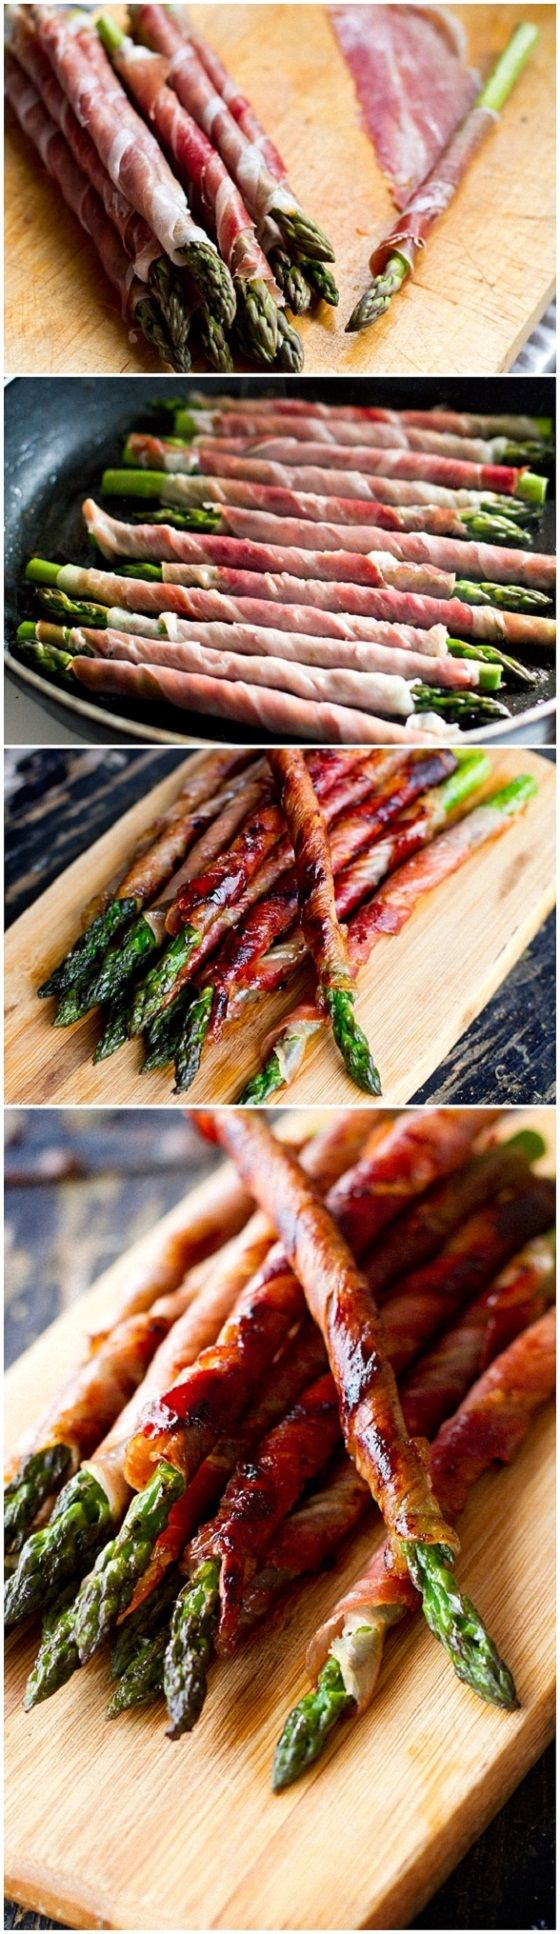 Prosciutto Wrapped Asparagus. I had these at a party last night and they are delicious!